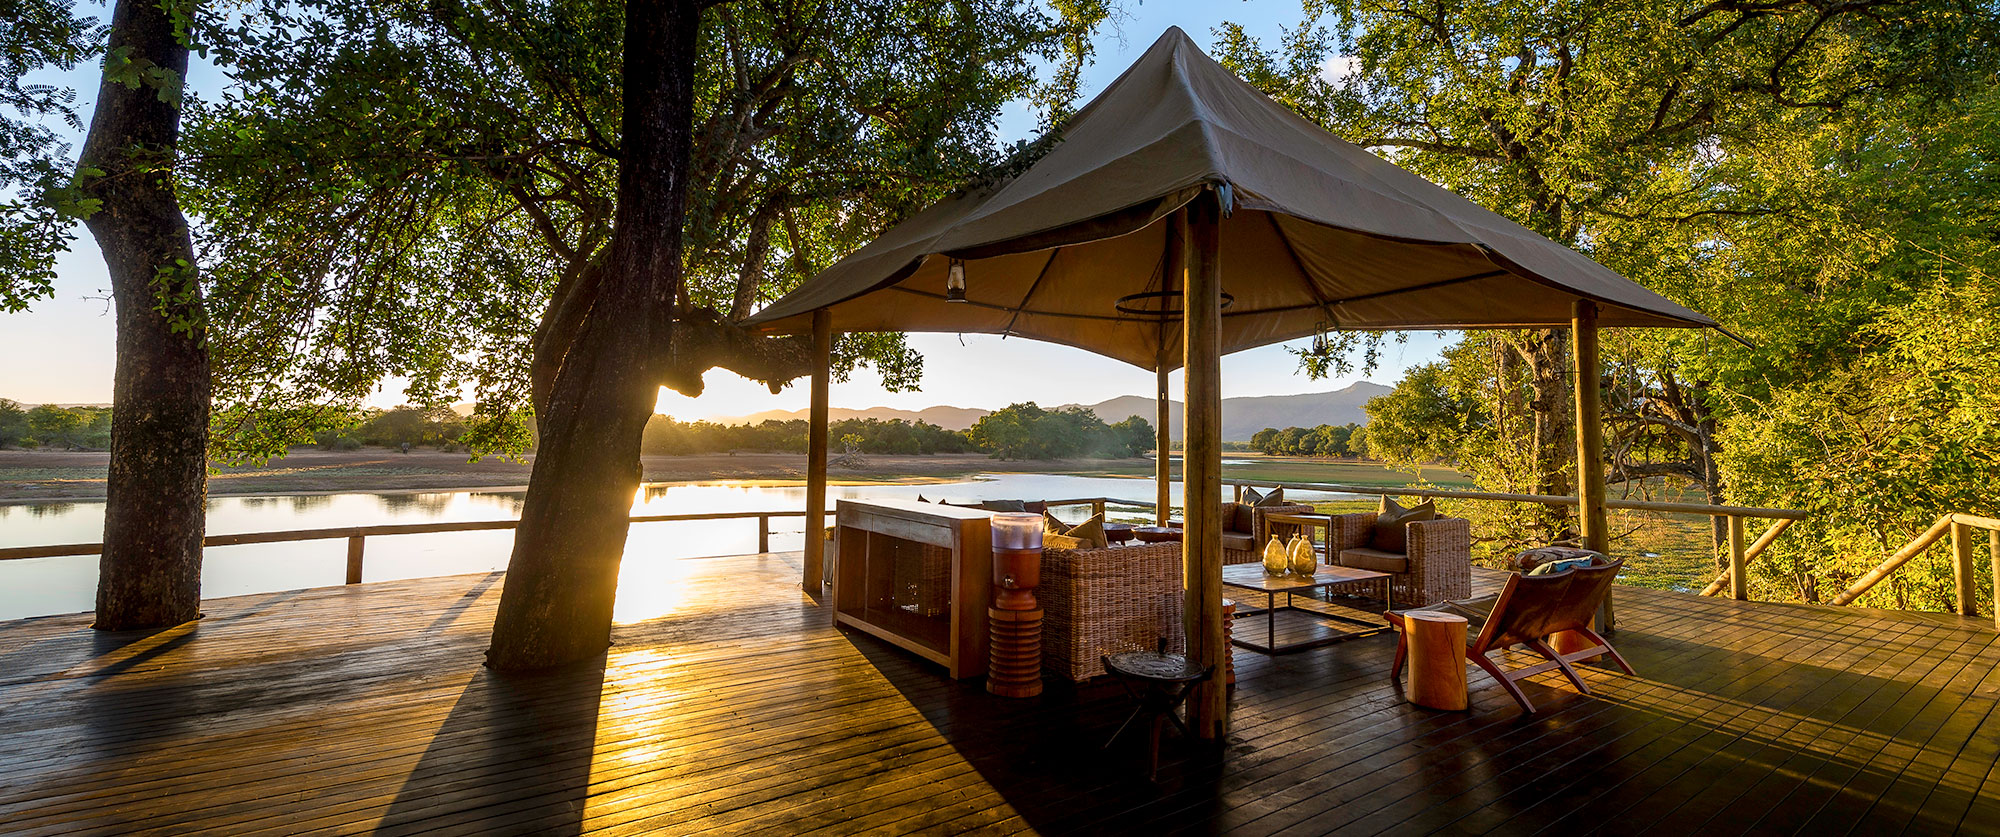 Safari in Africa - Chindeni Bushcamp, Zambia - Ultimate Wildlife Safari, Walking Safaris